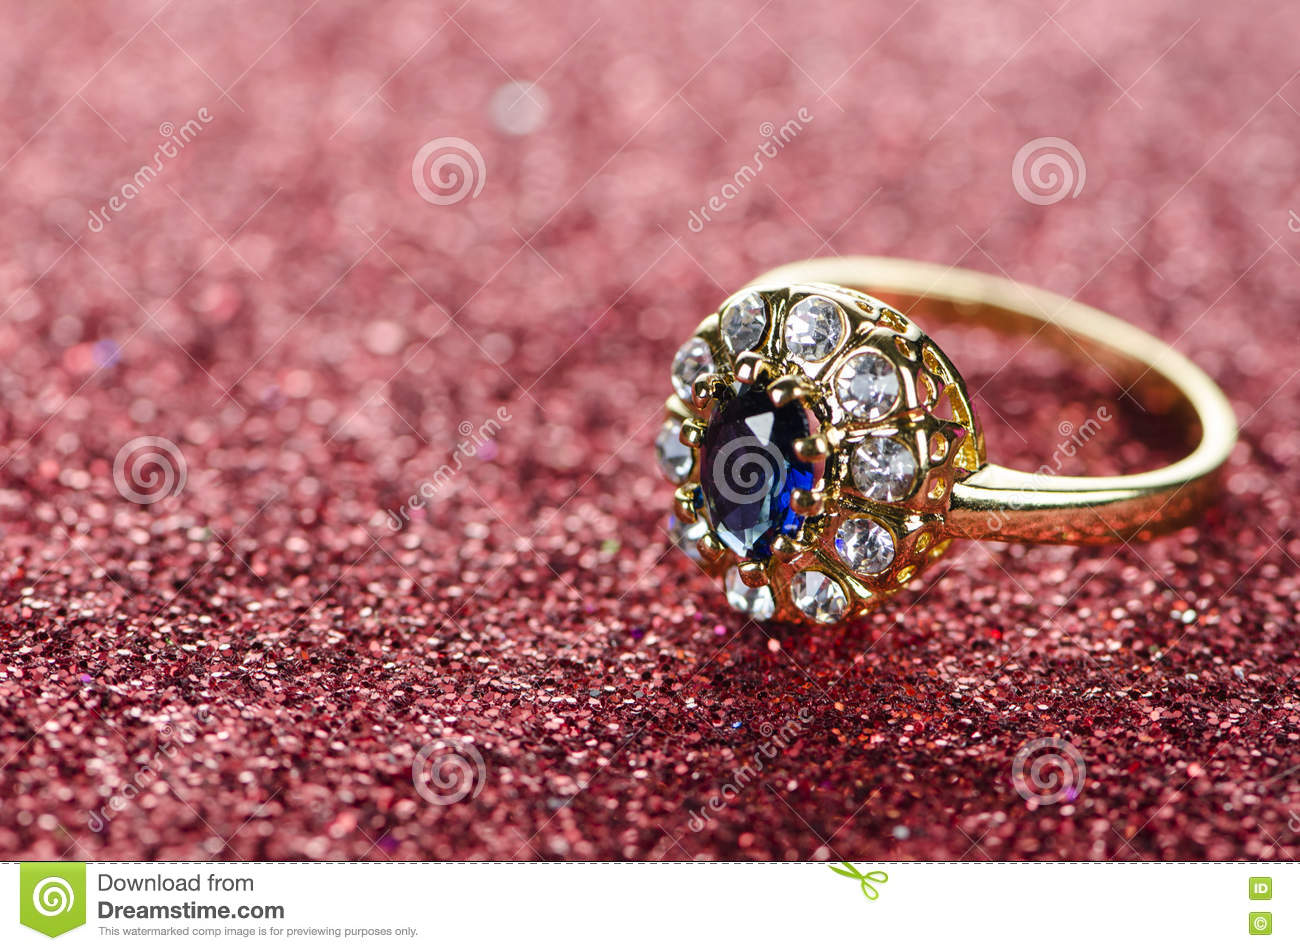 The jewellery ring against shiny background